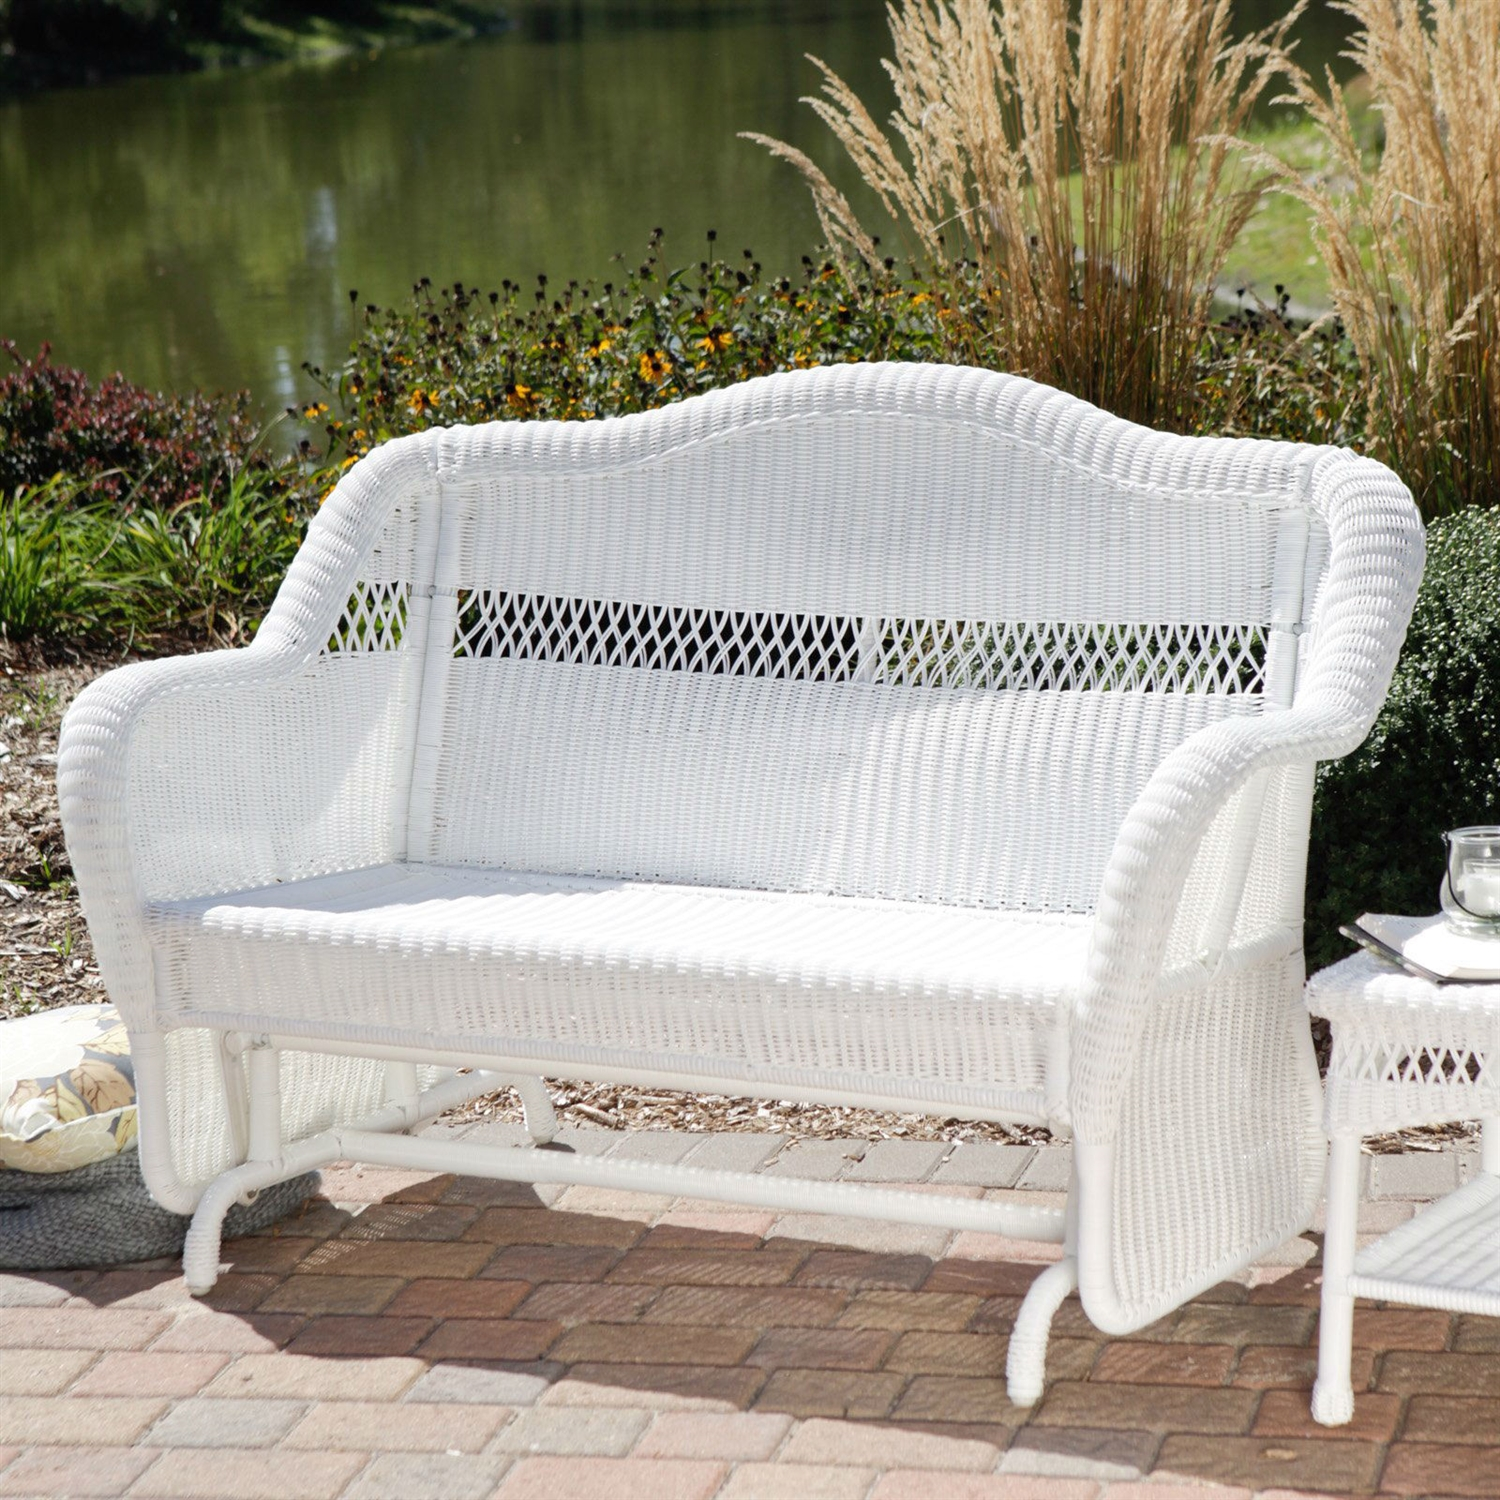 White Resin Wicker Outdoor 2 Seat Loveseat Glider Bench Patio Armchair Fastfurnishings Com